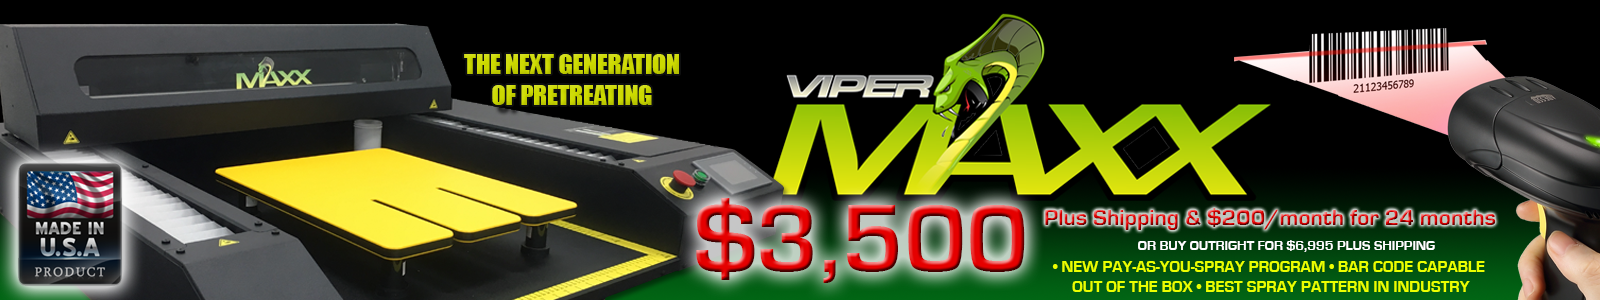 Viper MAXX pretreatment machine - pay as you spray